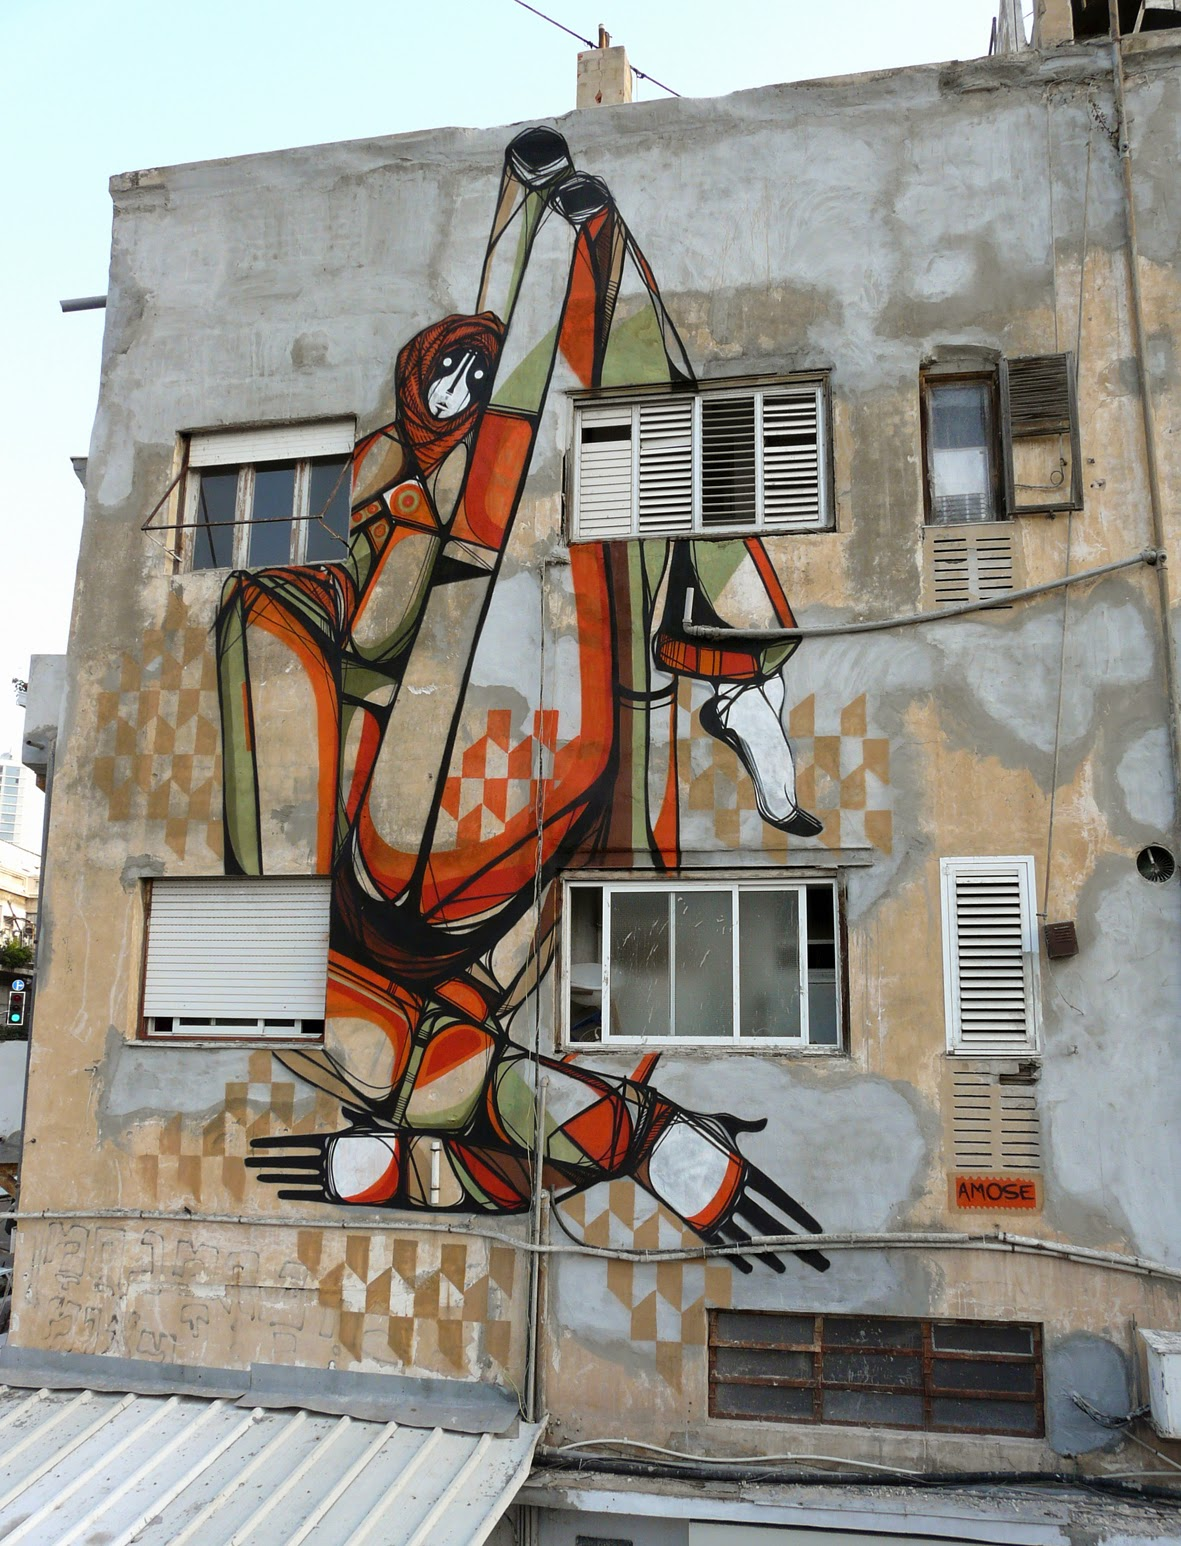 Amose is currently in Israel where he just finished working on this new street art piece on the streets of Tel-Aviv. 1